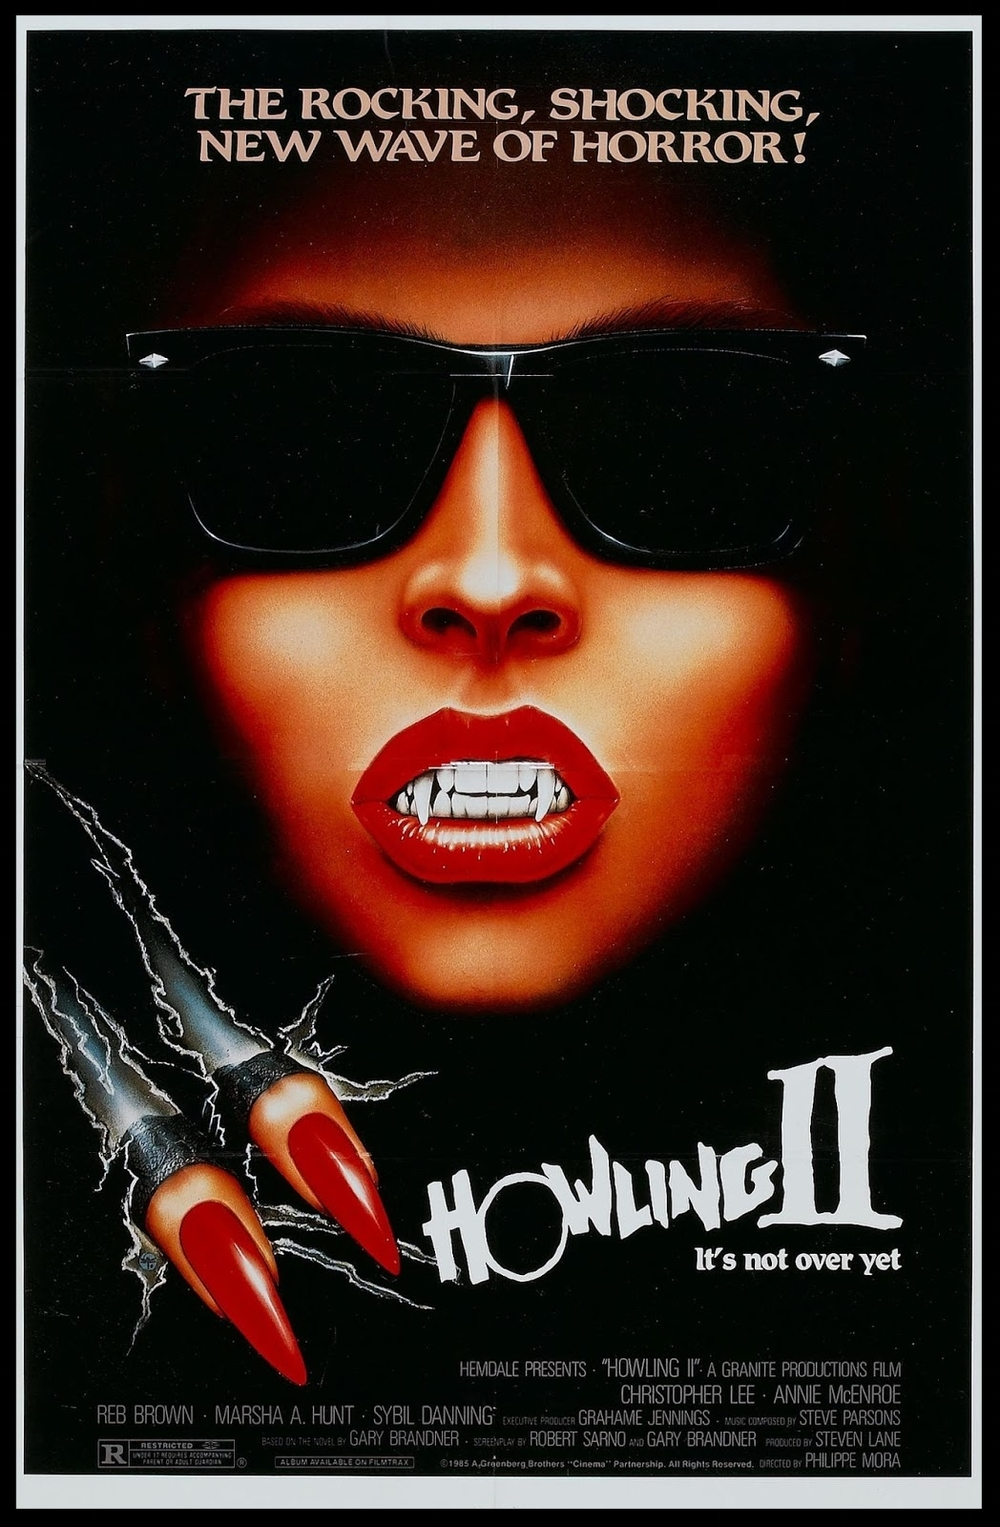 Howling 2 Movie Poster